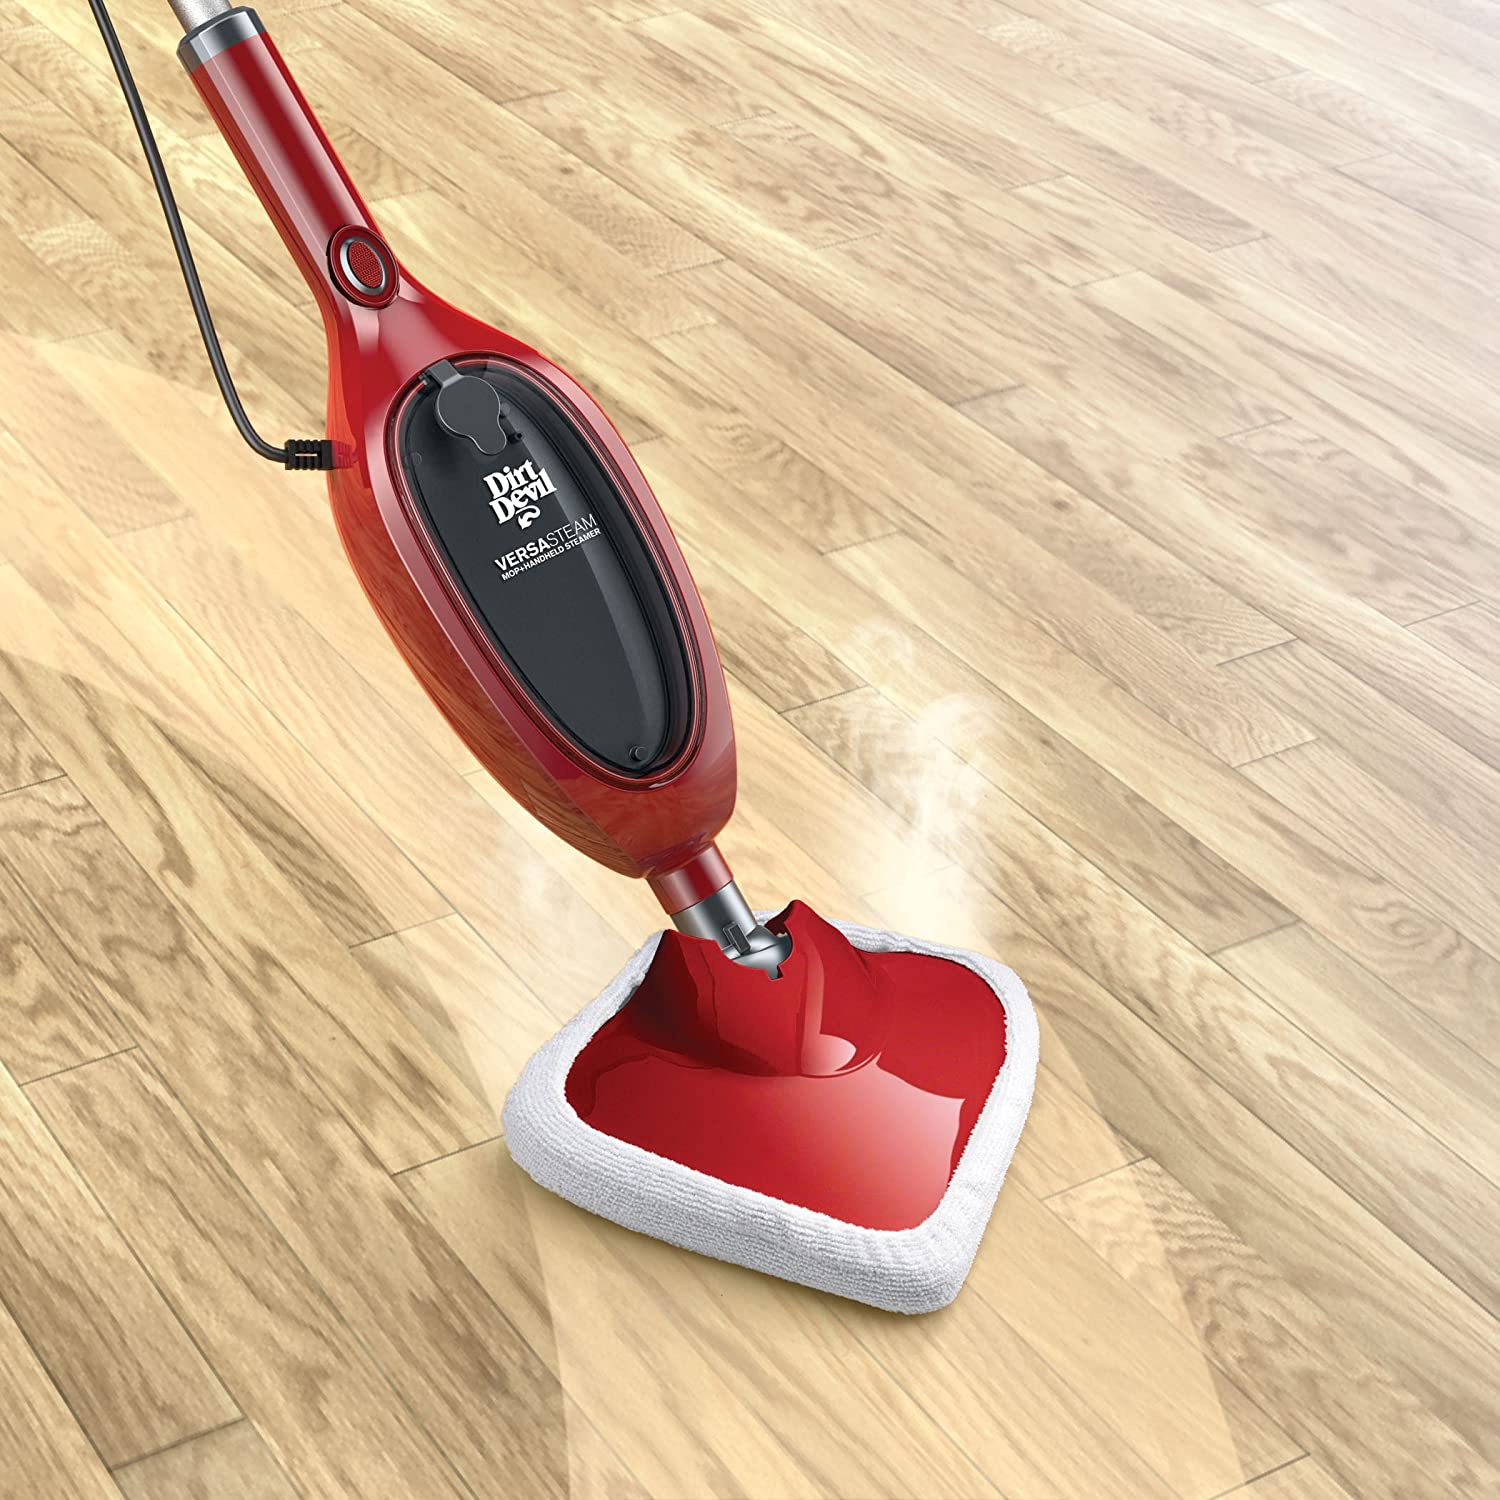 Dirt Devil Versa Mop with Detachable Handheld Steam Cleaner, PD20100, Red